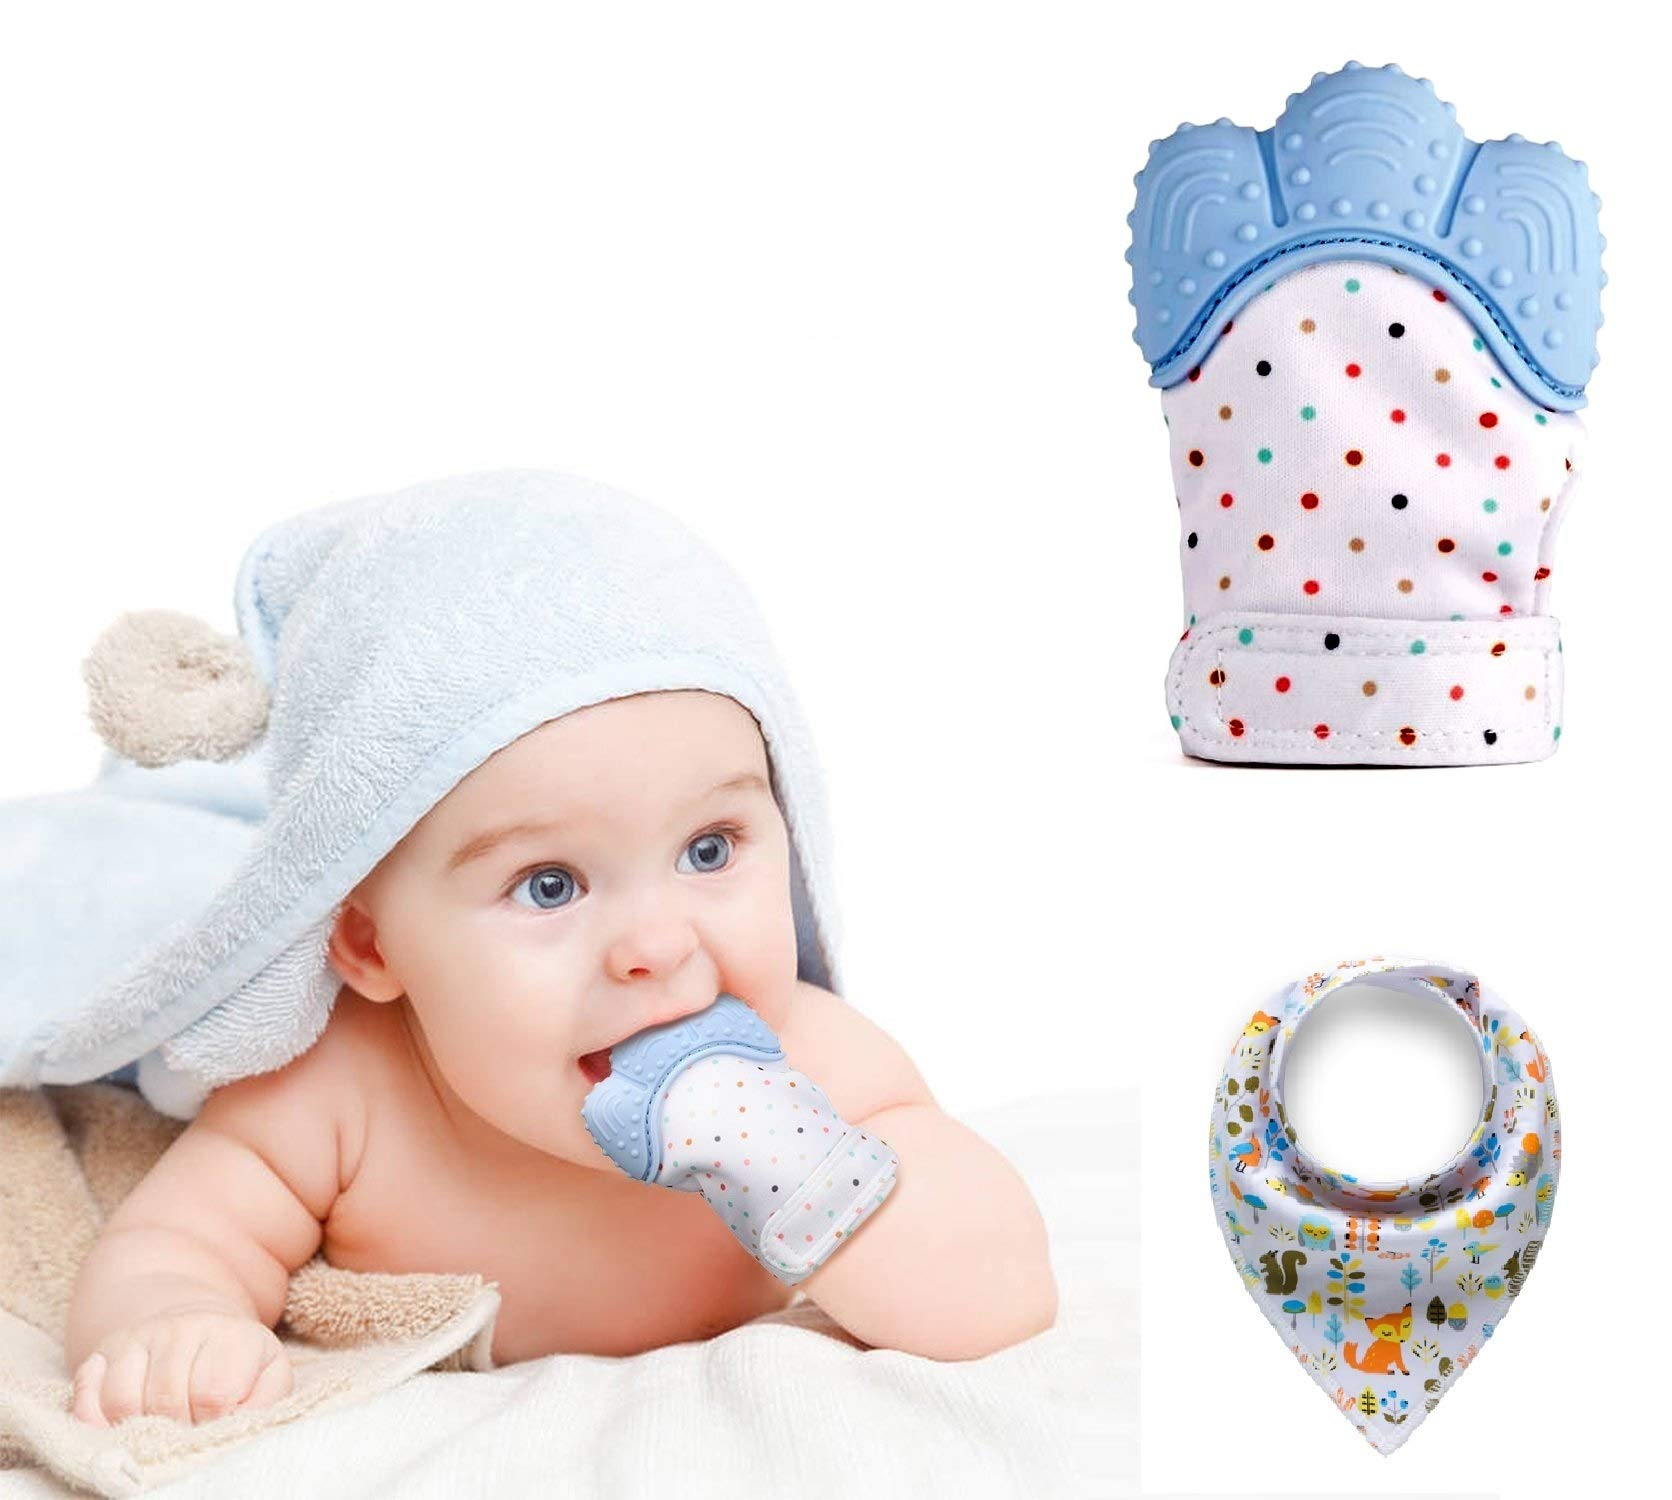 Funky Planet Teething Glove Silicone, Teething Glove Hygienic, Silicone Teether Mitten for Self-Soothing Pain Relief, Protects Babys Hands from Chewing + Free Bandana Baby BIB 1